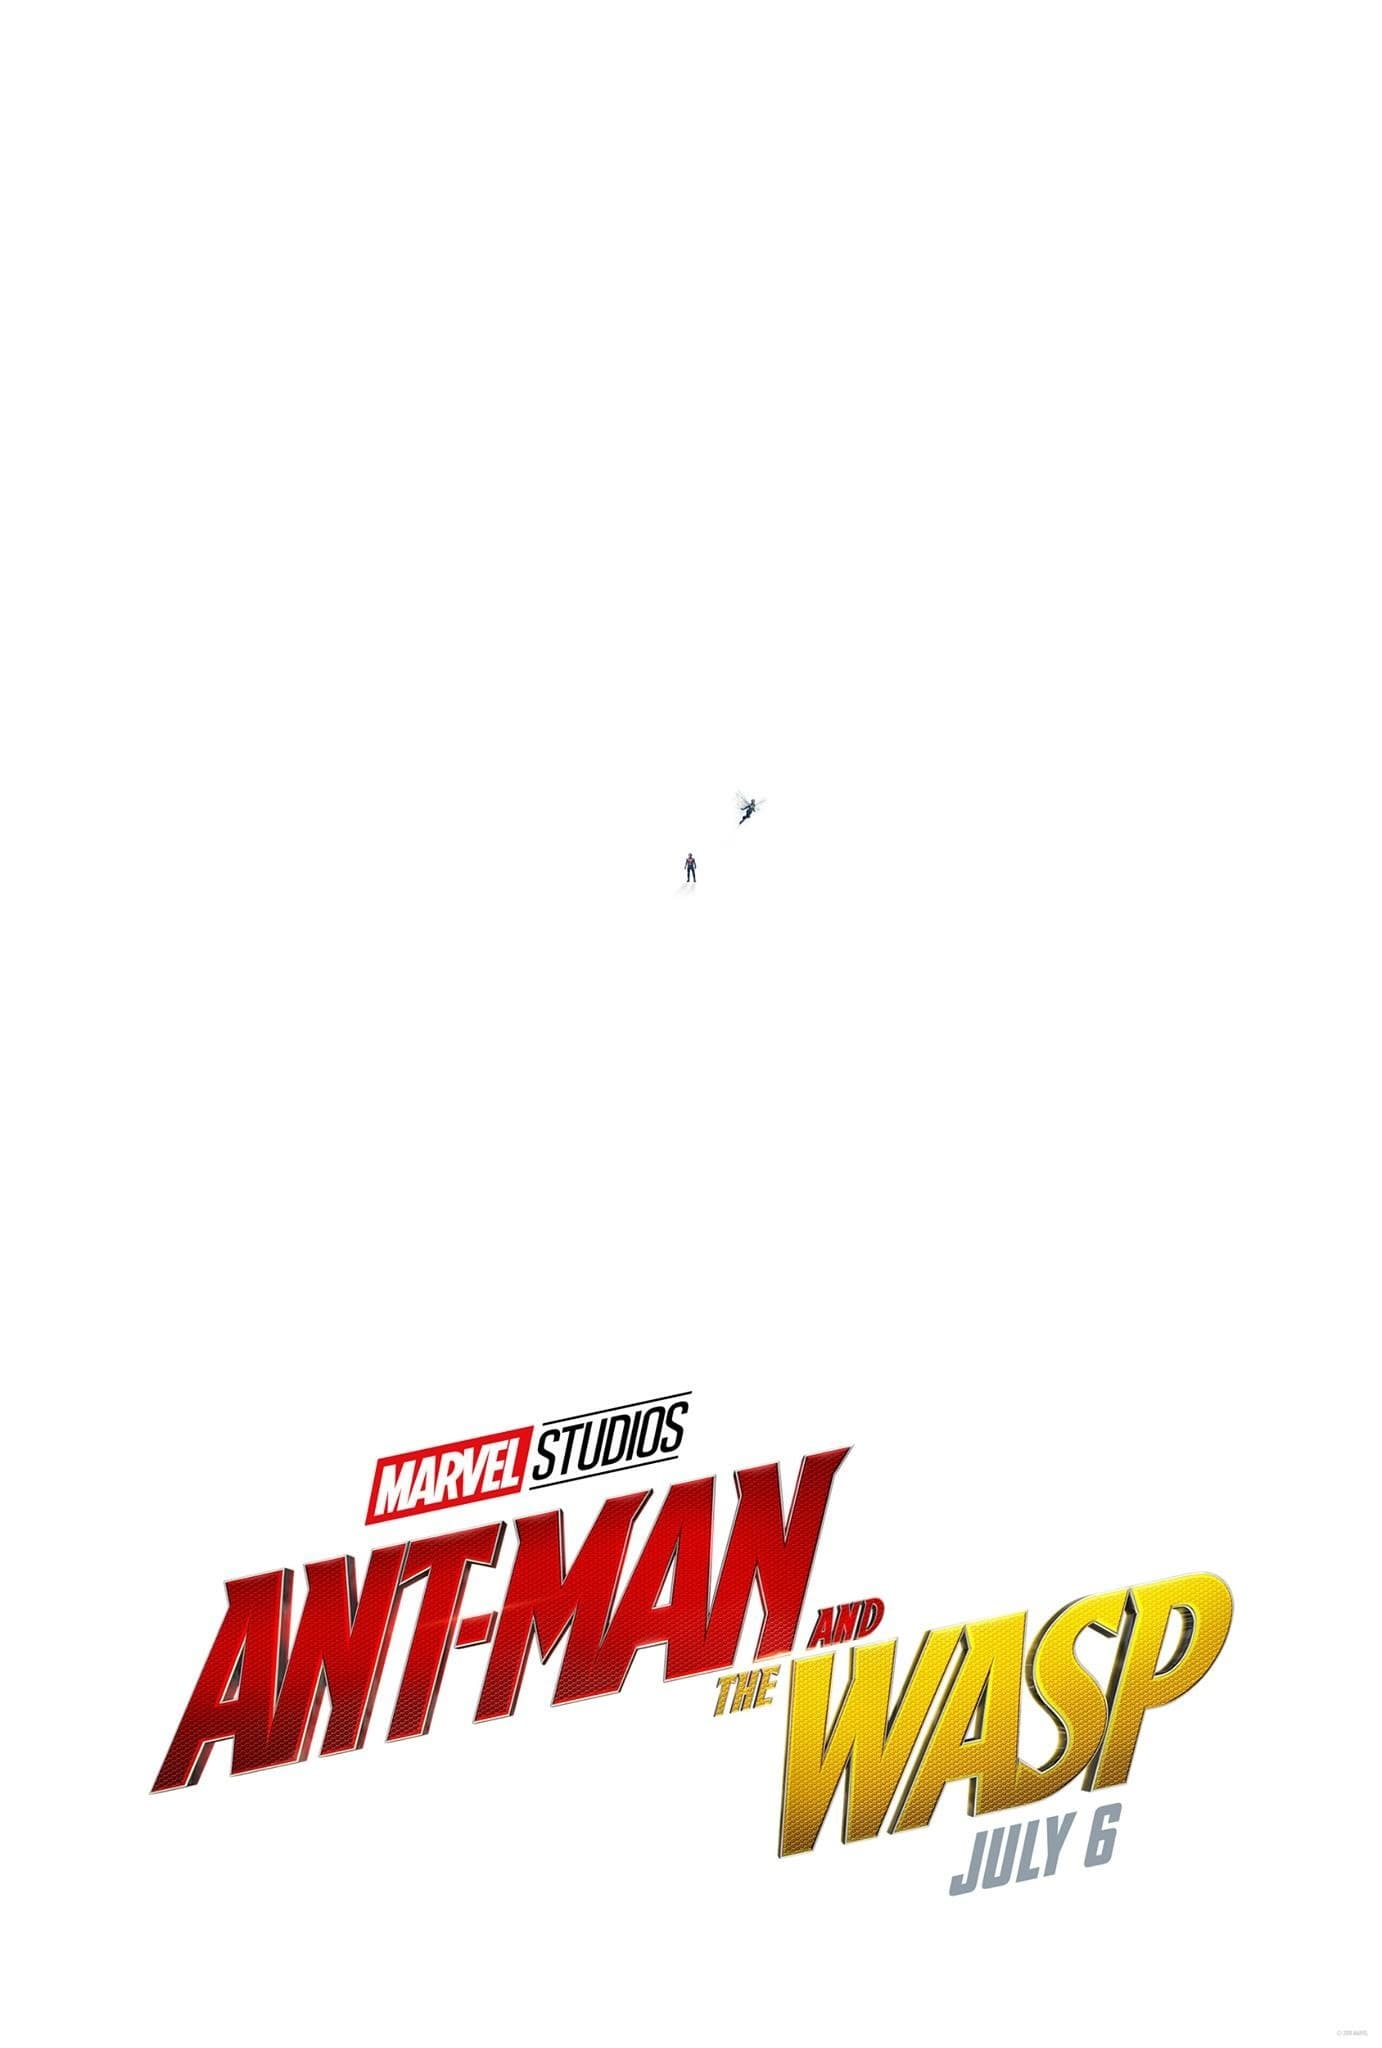 Ant-Man and the Wasp (2018) Trailer #1